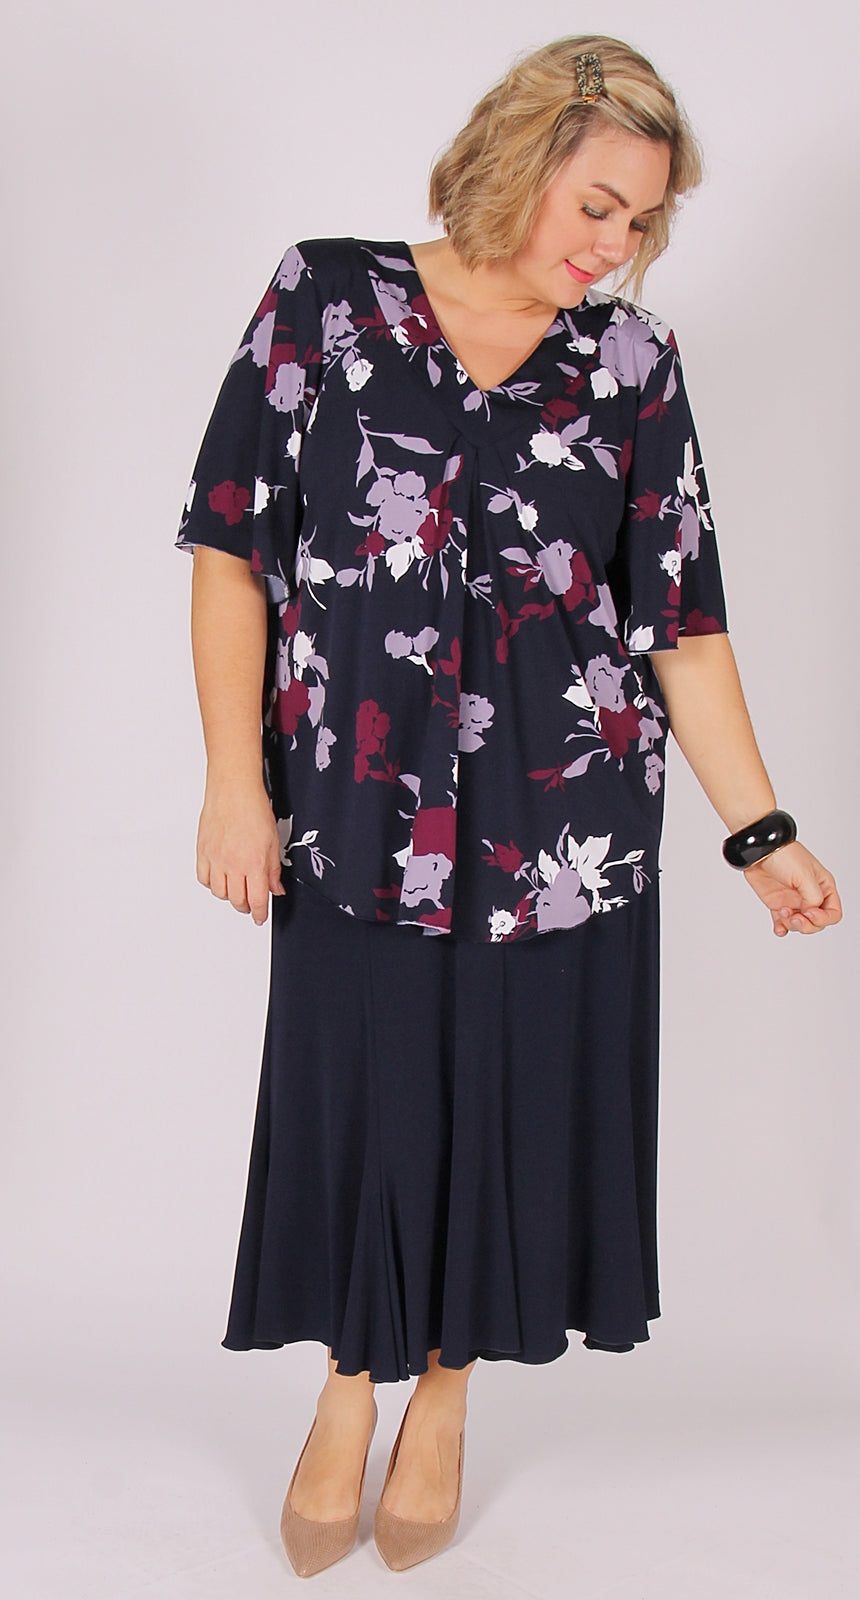 Flare and Fit Eight Gore Skirt Navy